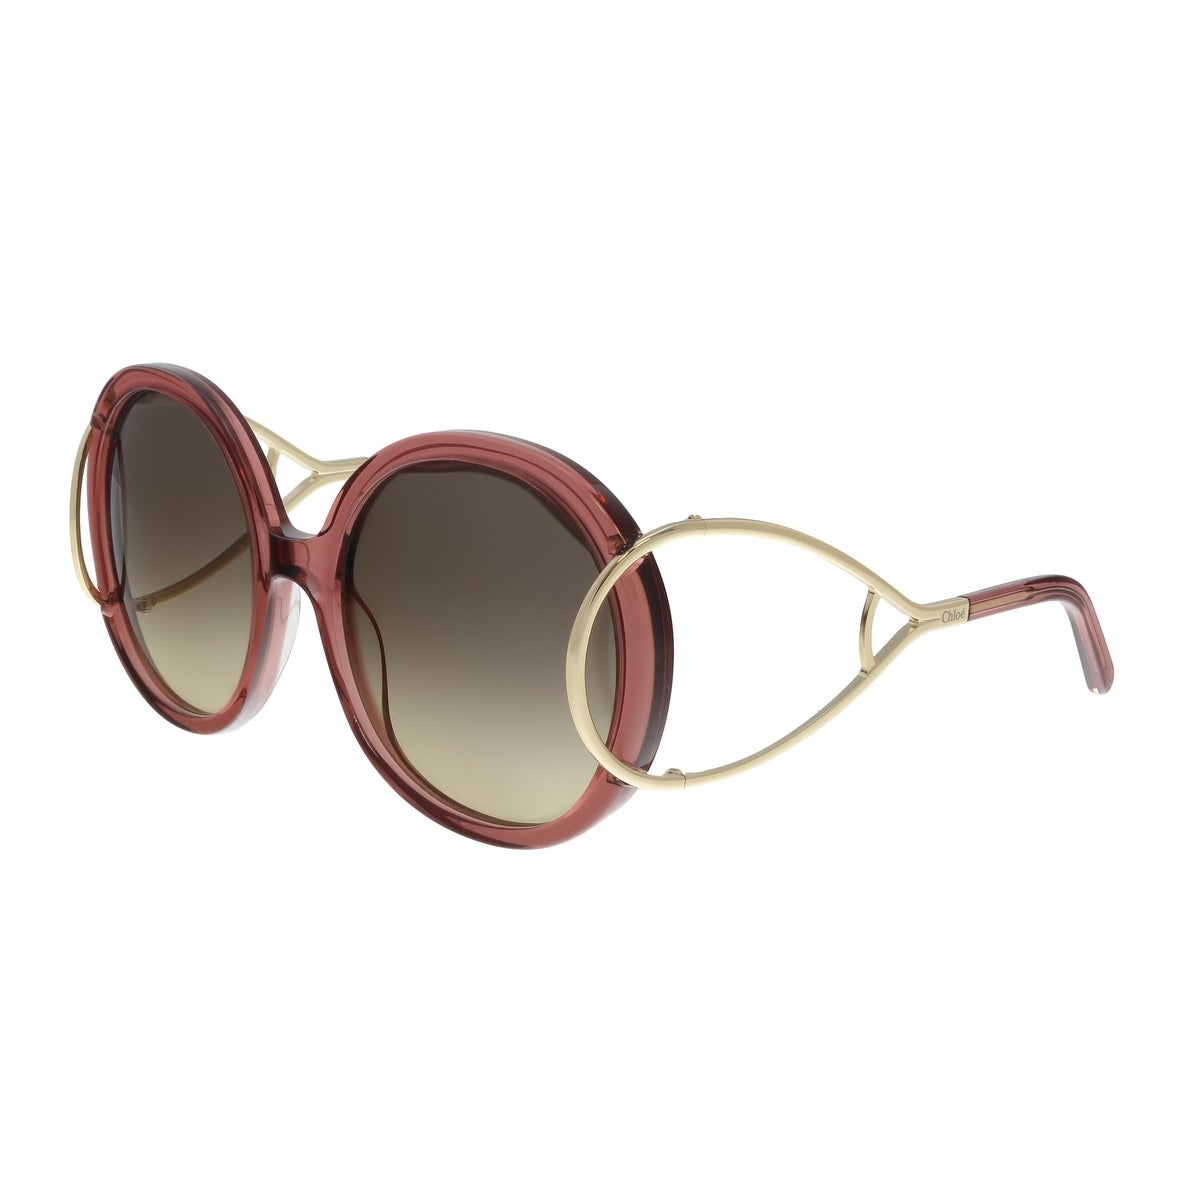 54667ddcaa31 Chloe Sunglasses | Shop our Best Clothing & Shoes Deals Online at Overstock